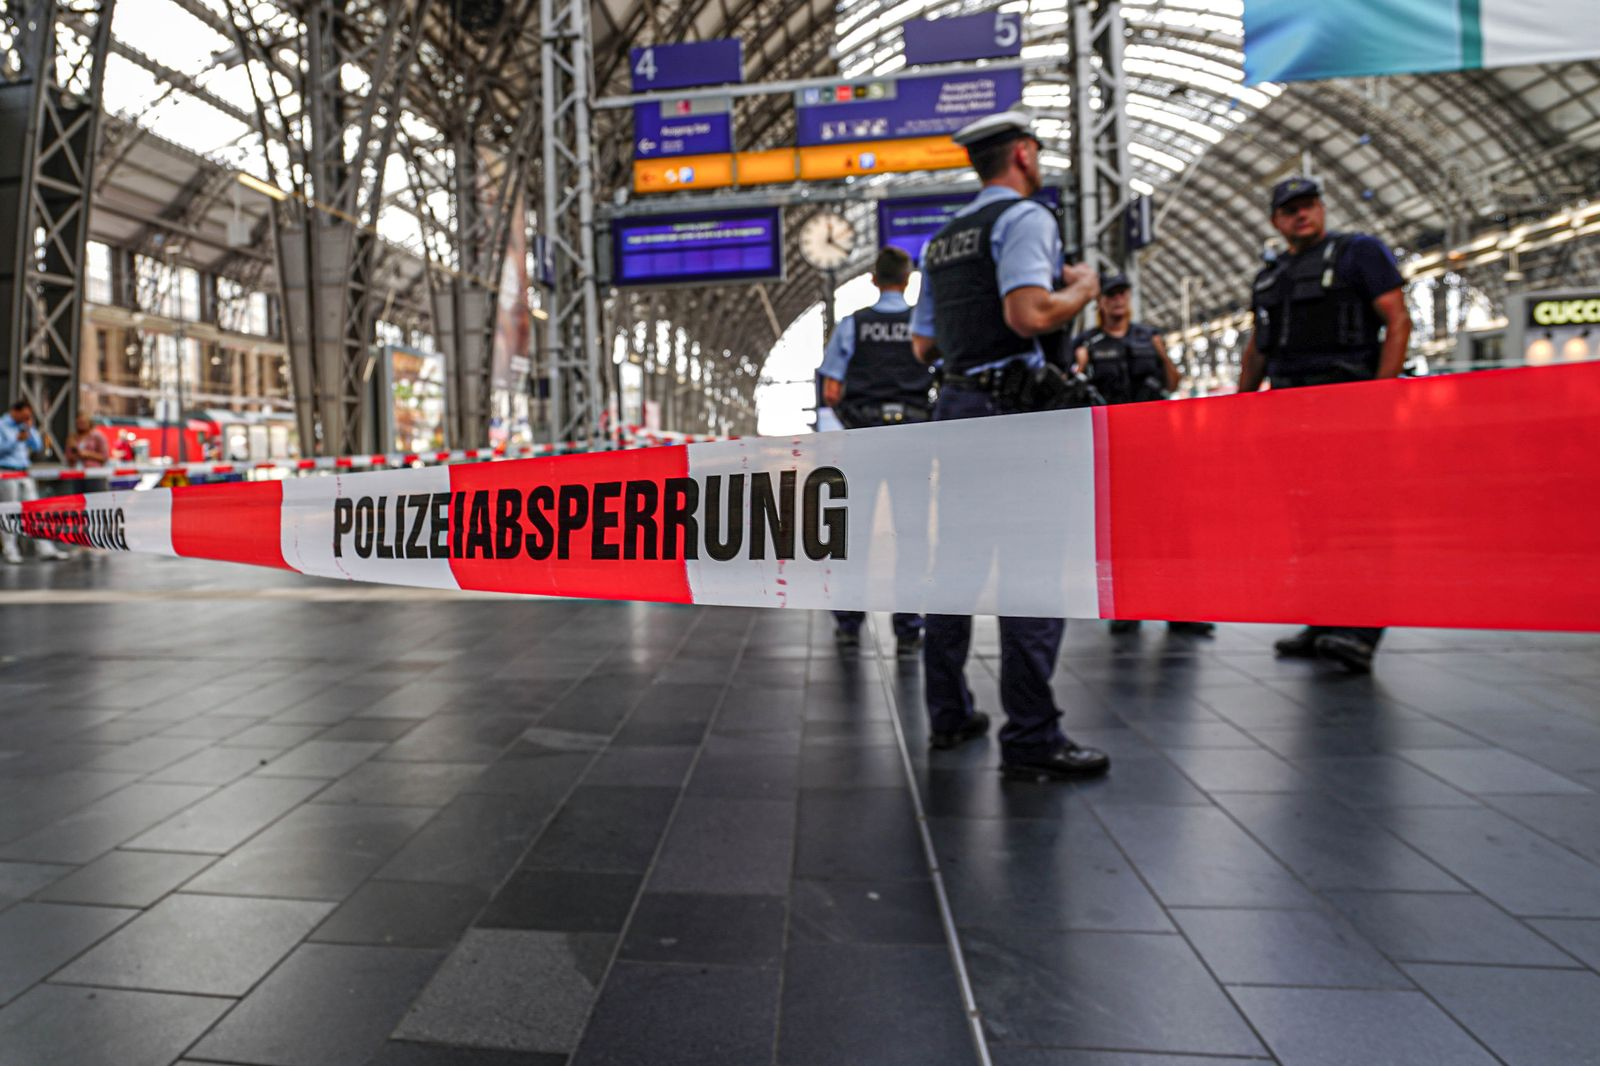 German police say a child has died after being pushed onto the tracks, Frankfurt, Germany - 29 Jul 2019